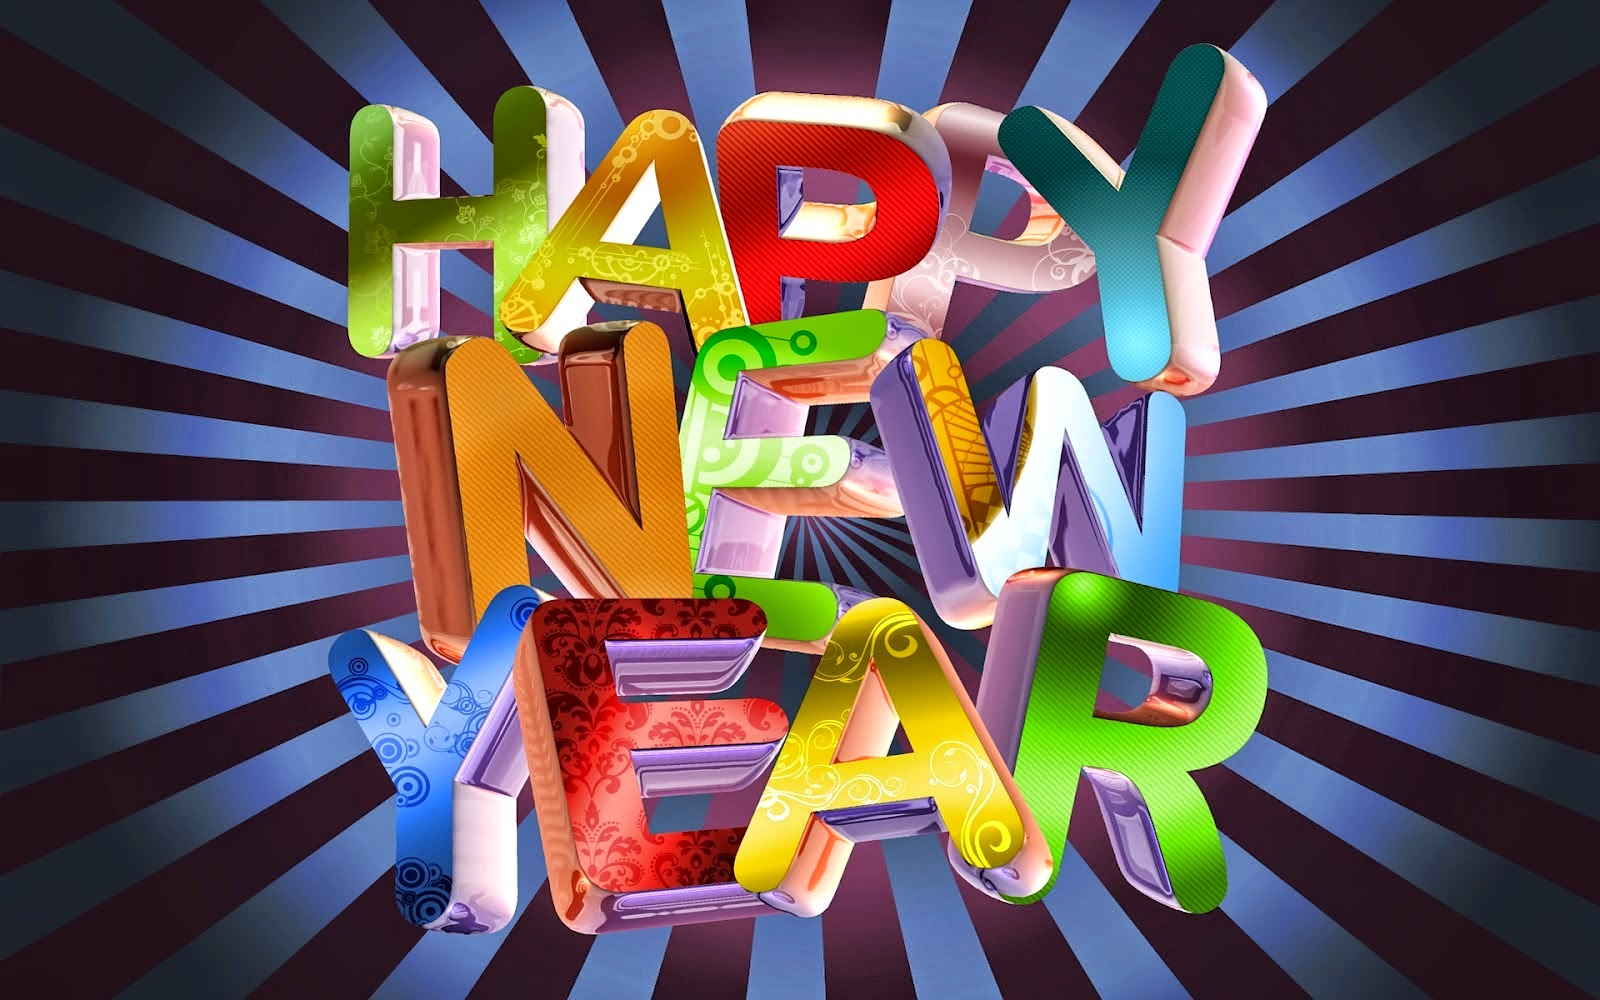 50 Happy New Year 2020 Background Images in HD   Happy New Year 1600x1000